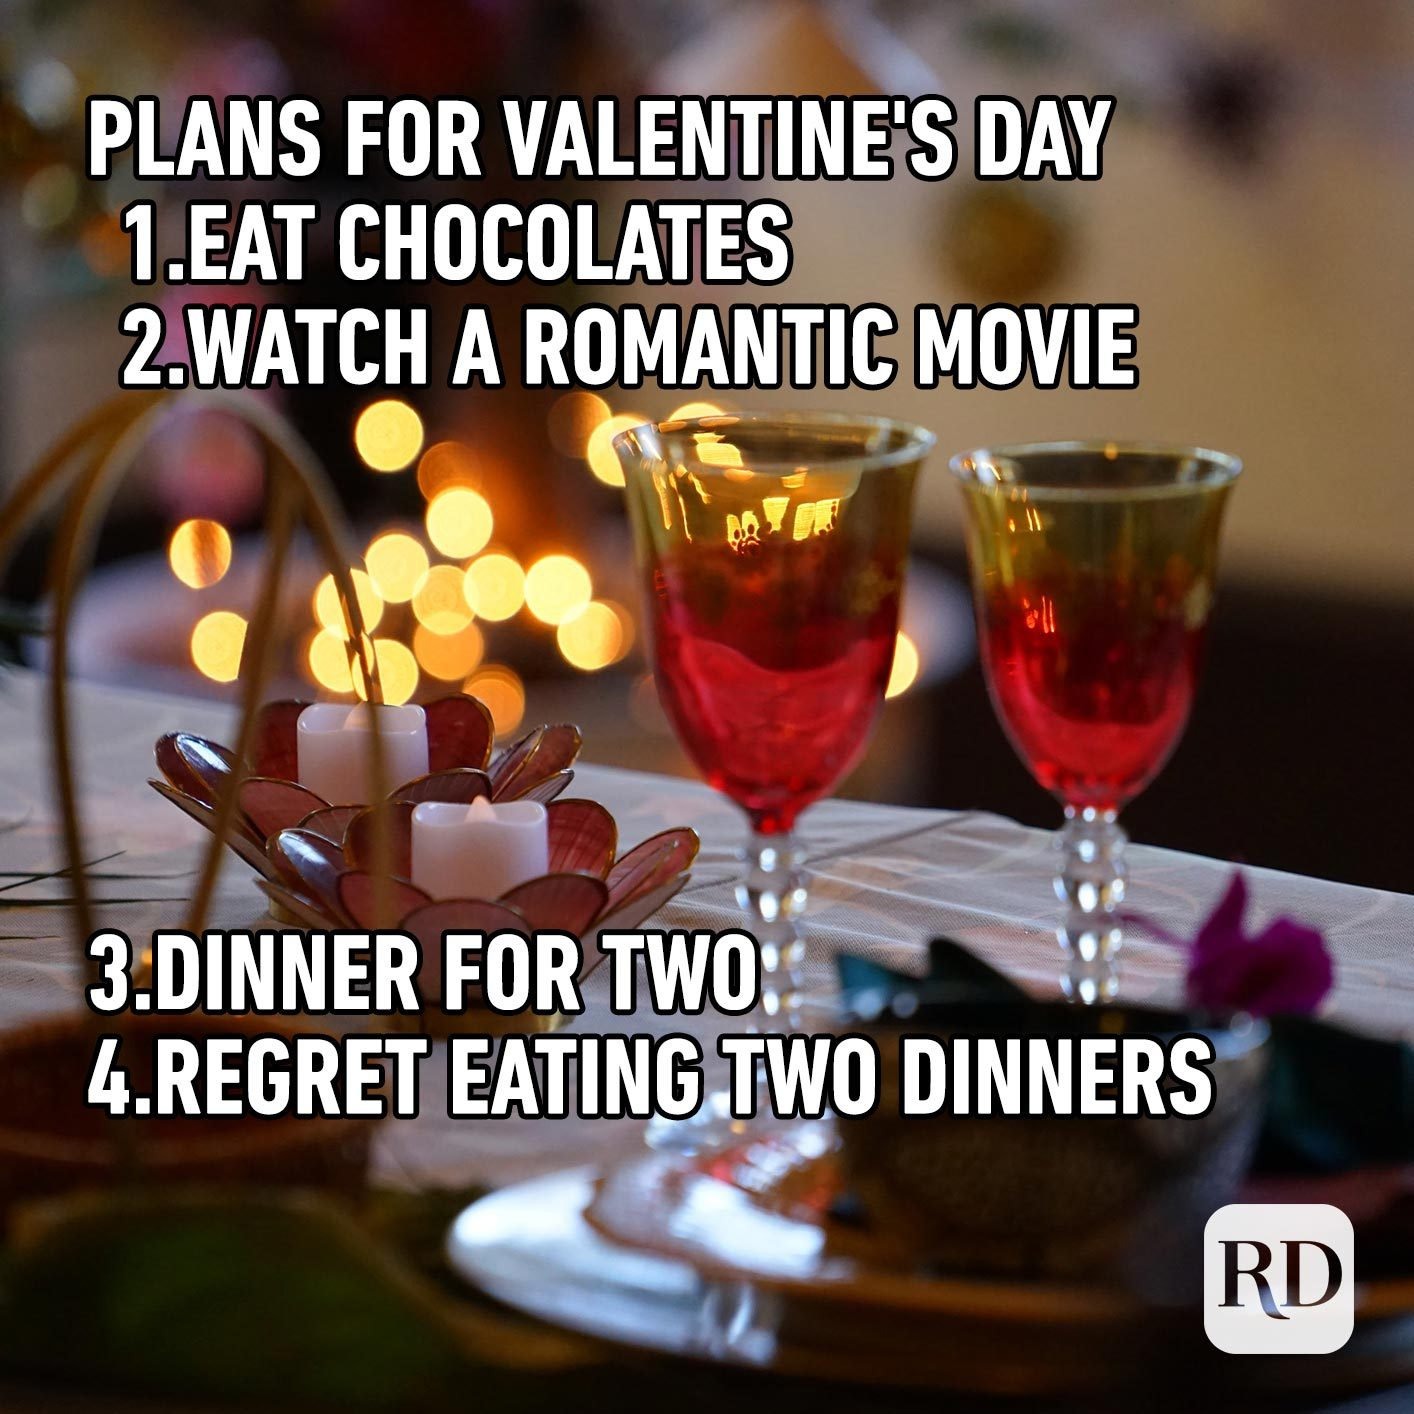 Romantic dinner. Meme text: Plans for Valentine's Day Eat chocolates Watch a romantic movie Dinner for two Regret eating two dinners